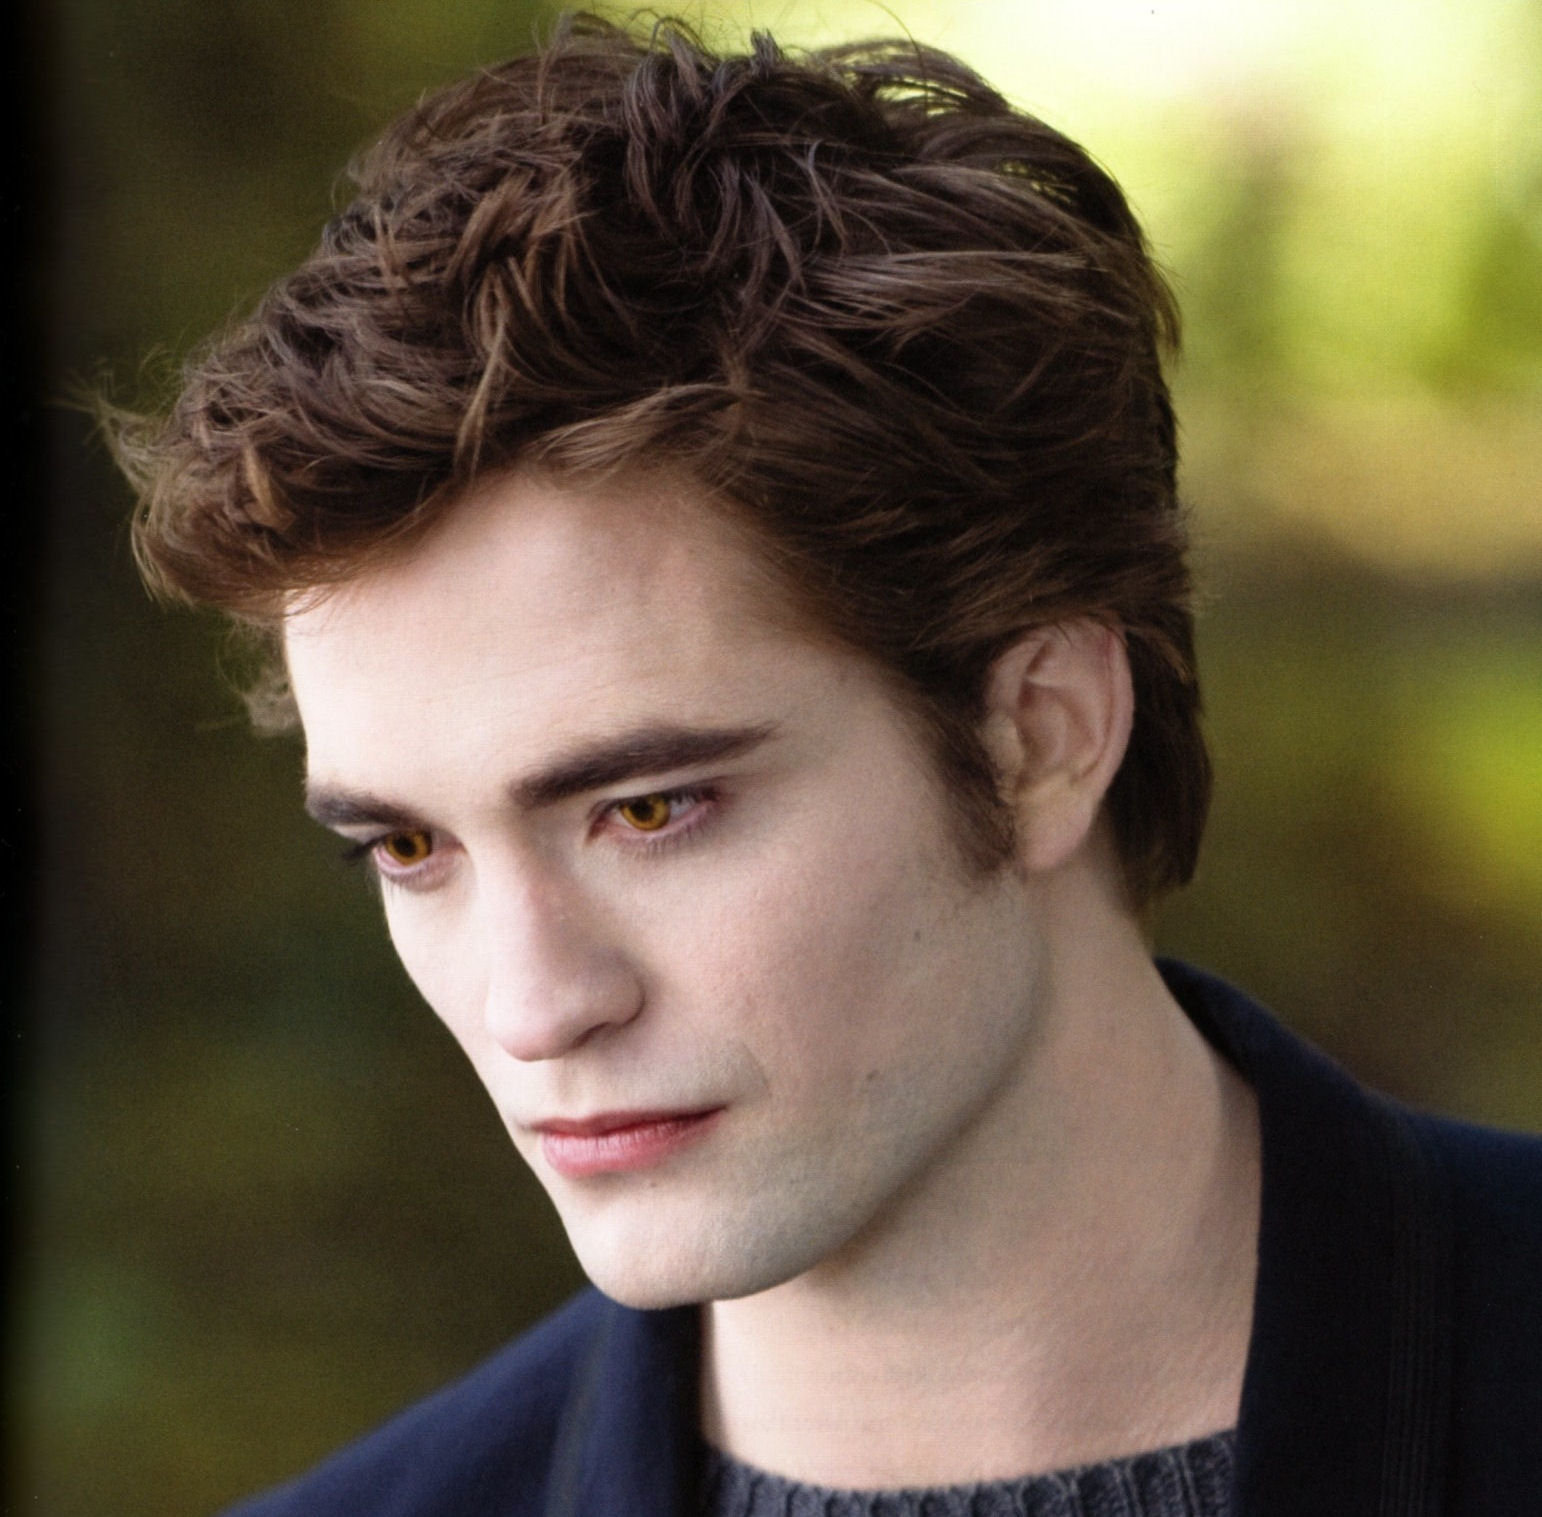 Edward edward cullen photo 27673809 fanpop for Twilight edward photos